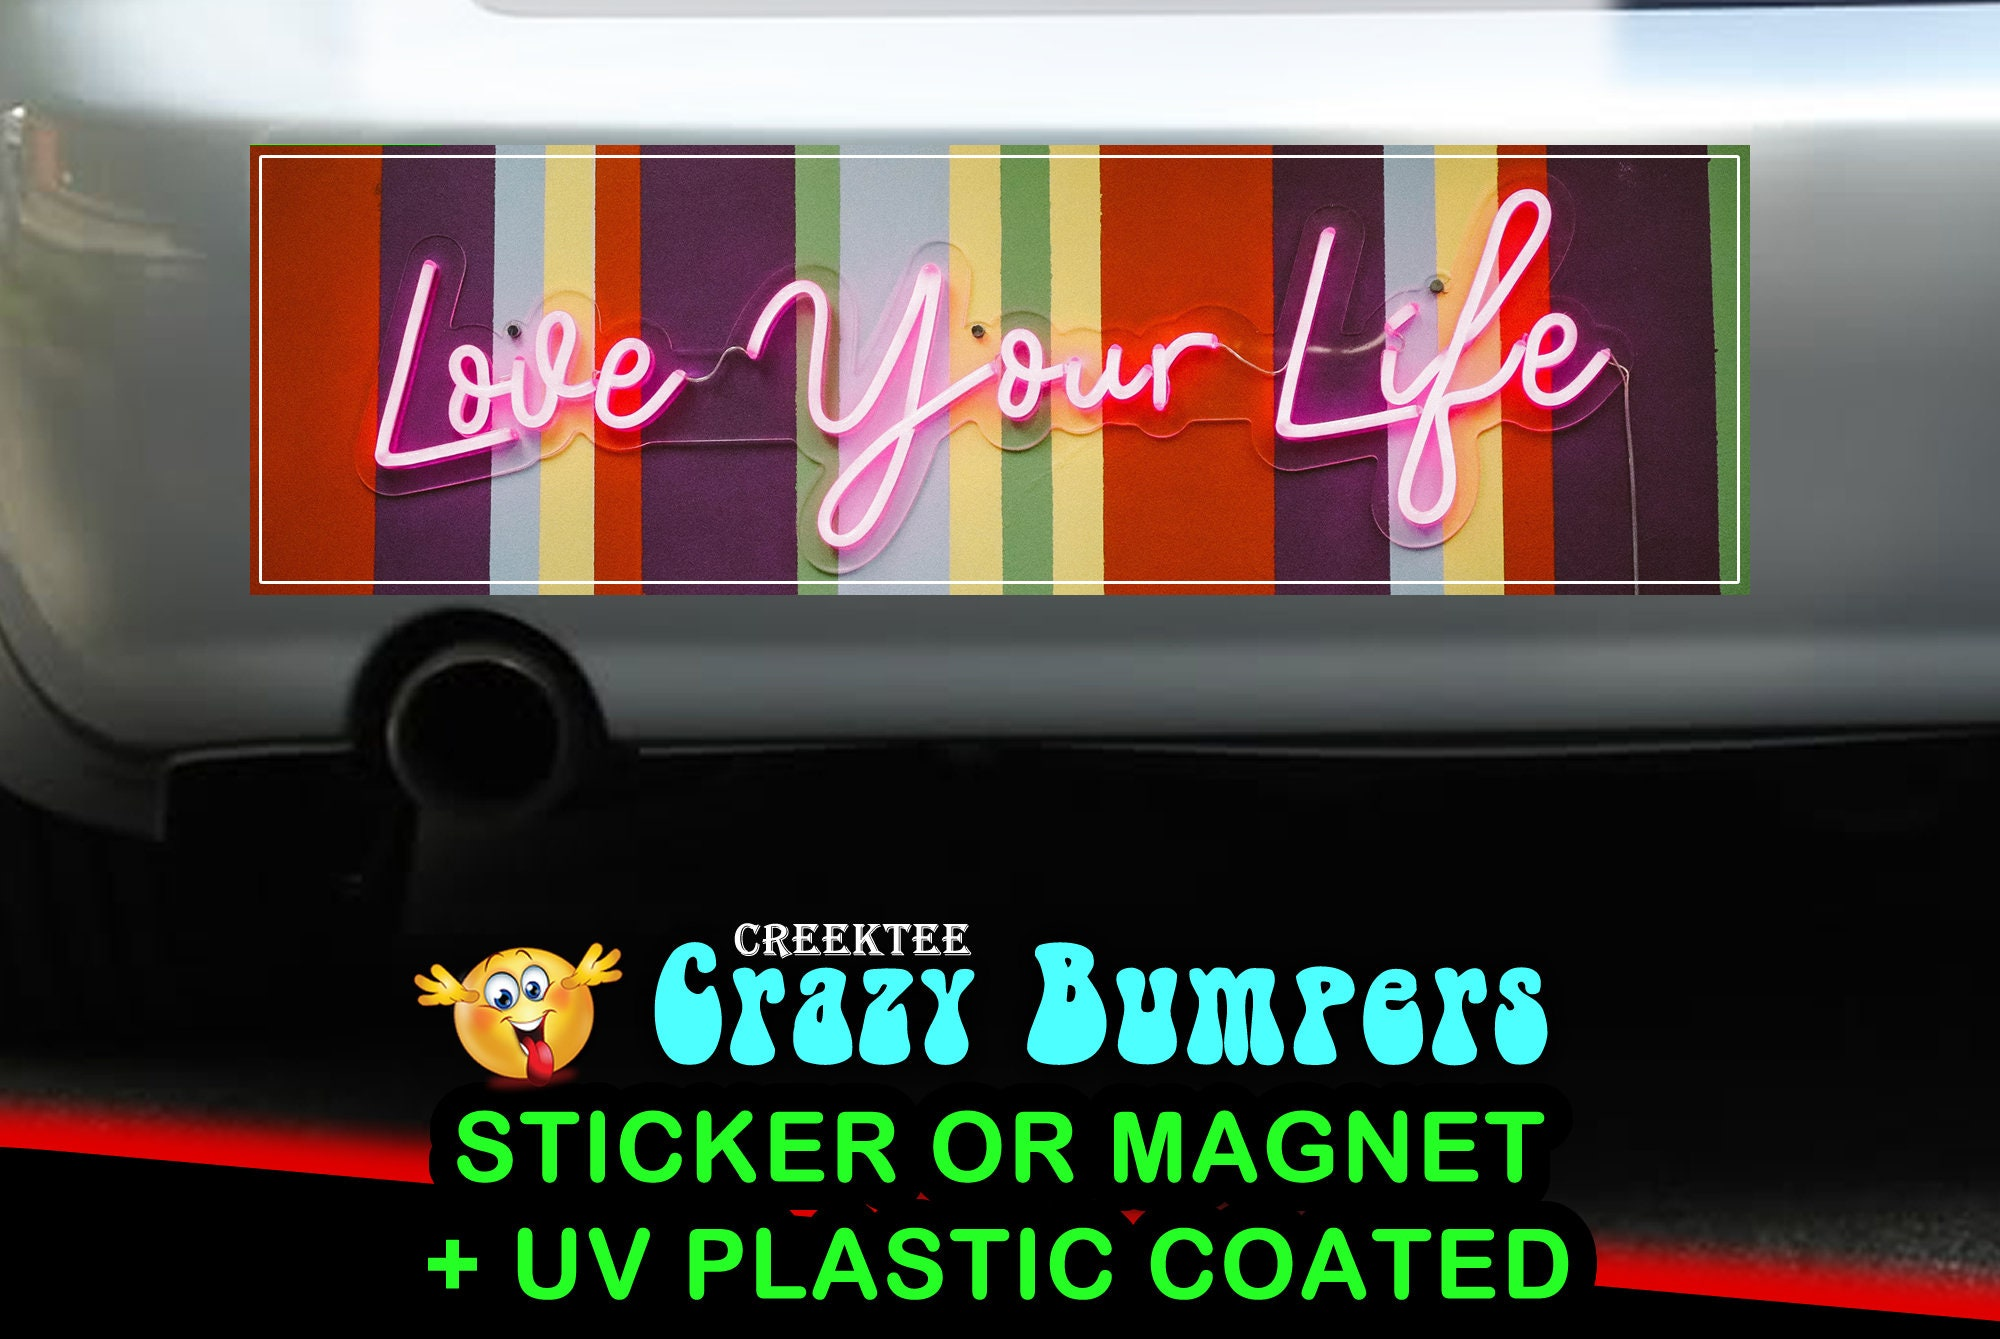 CAD$7.99 - Love Your Life 10 x 3 Bumper Sticker or Magnet - Custom changes and orders welcomed!